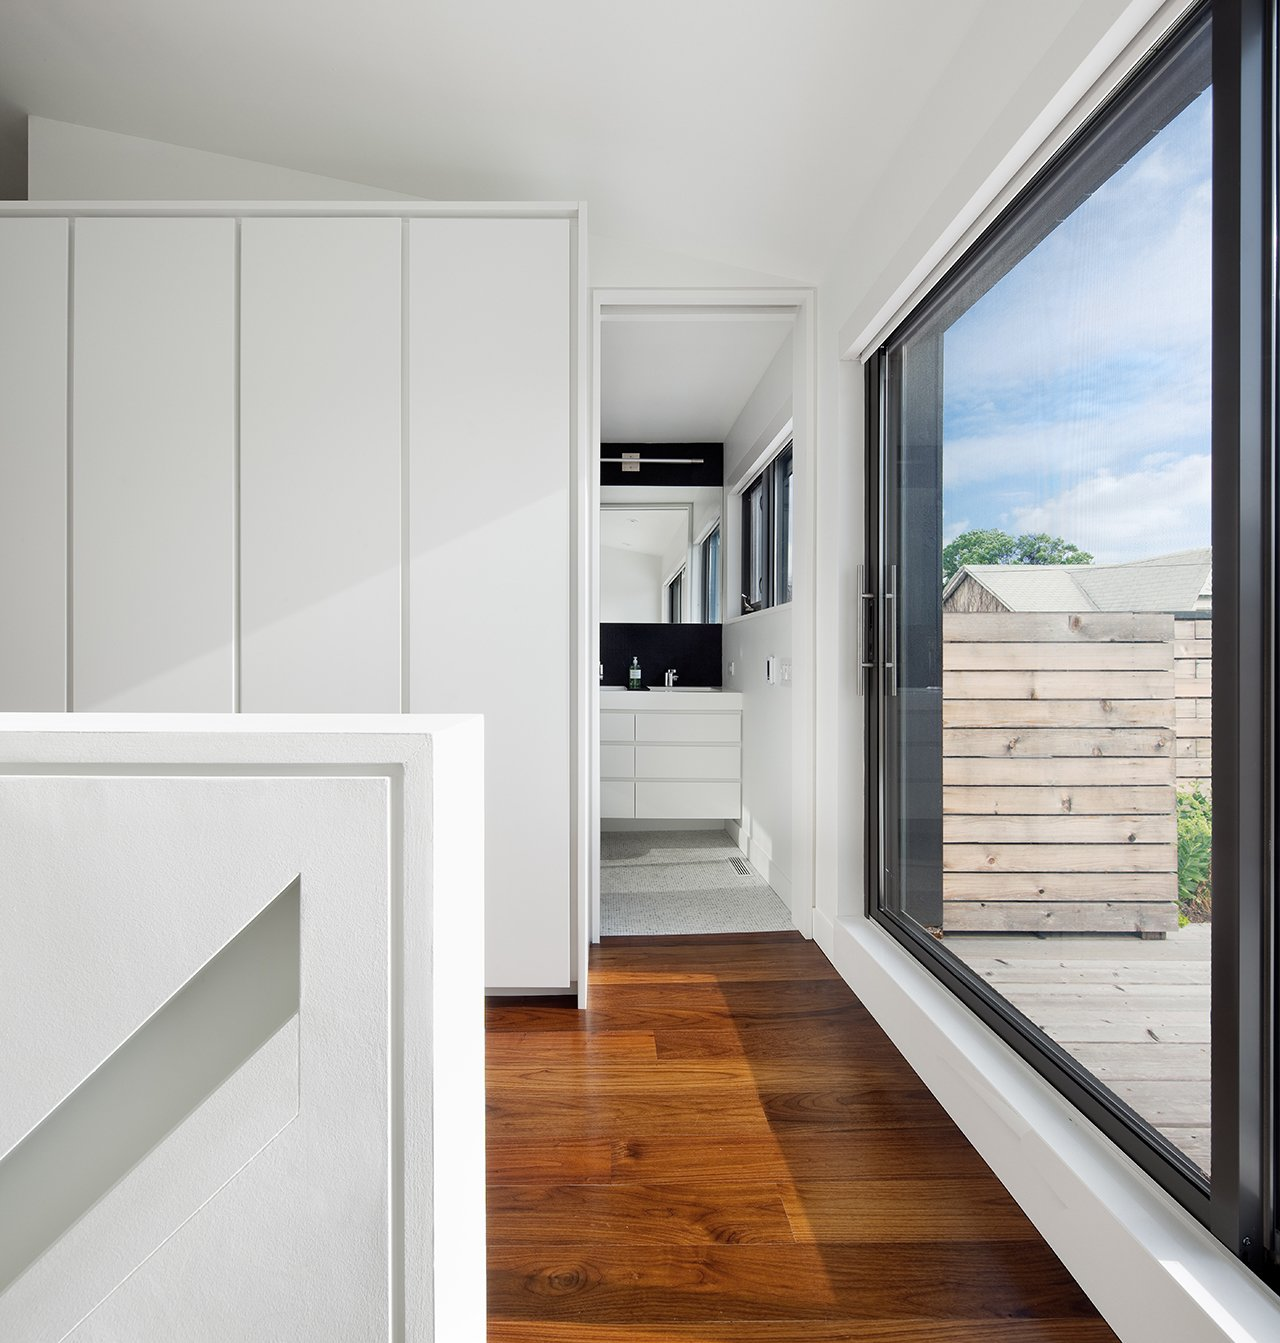 """Directly at the top of the stairs on the third story, oversized sliding glass doors lead out to a sunny roof deck. To the left, an ensuite bathroom is furnished with Duravit and Wetstyle fixtures. """"It has tiny white tumbled marble mosaic tiles, which are very soft underfoot,"""" Dubbeldam says.  Contrast House by Laura C. Mallonee"""